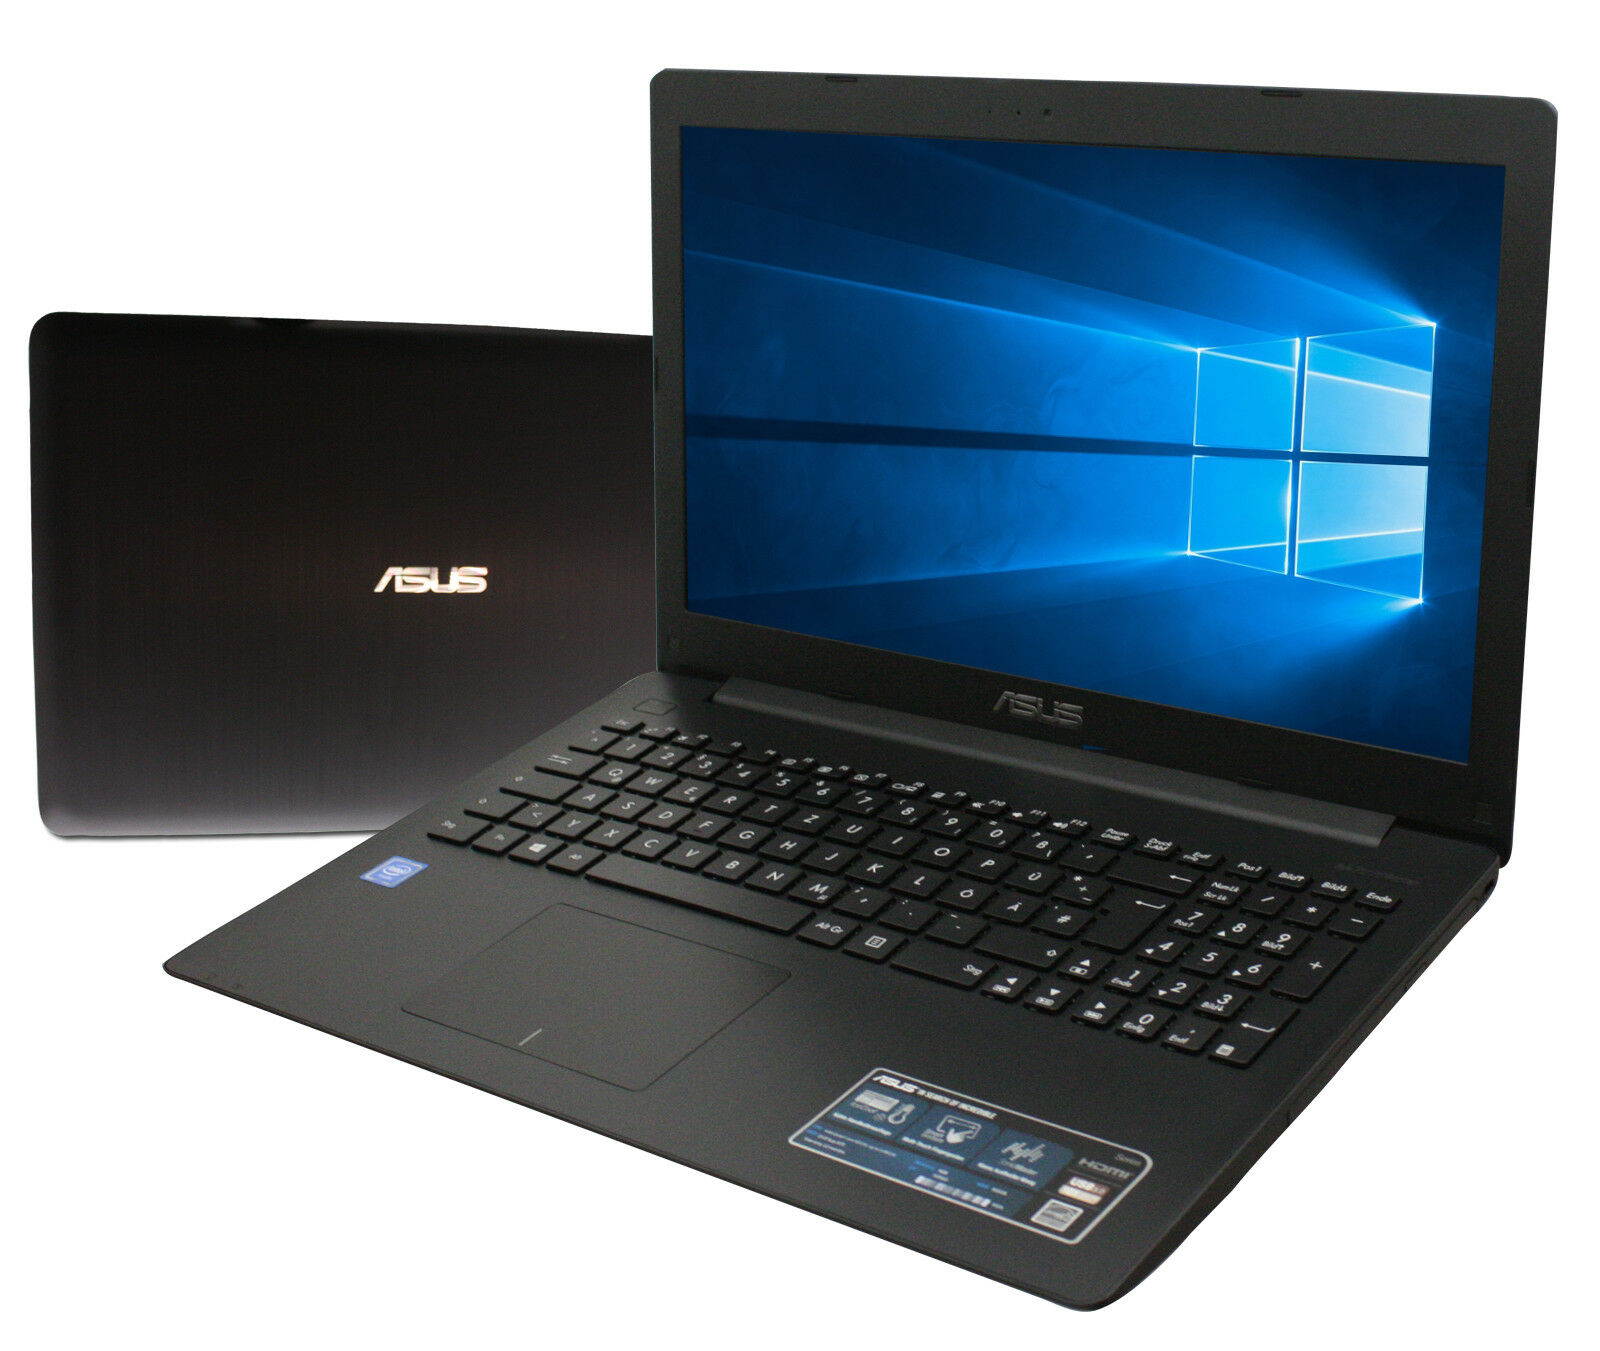 ASUS F751NA Notebook 17 Zoll HD+ Quad Core 4 x 2,5GHz 4GB 500GB Win10 Schwarz